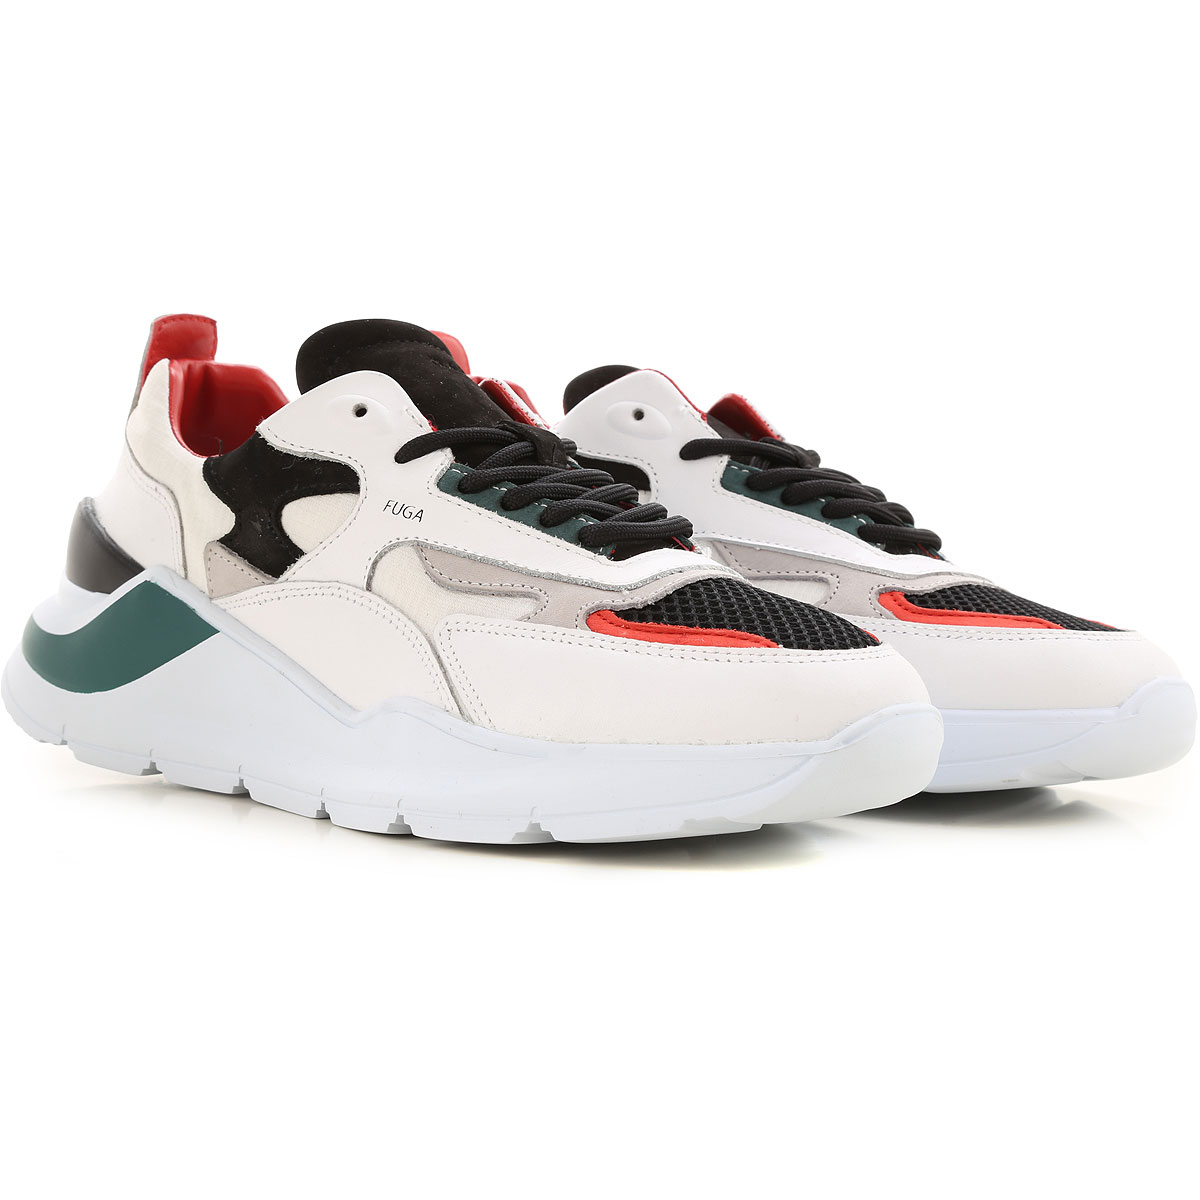 D.A.T.E. Sneakers for Men On Sale, White, Leather, 2019, US 9 - EU 42 - UK 8 - JP 27 US 10 - EU 43 - UK 9 - JP 27.5 US 11 - EU 44 - UK 10 - JP 28 US 1